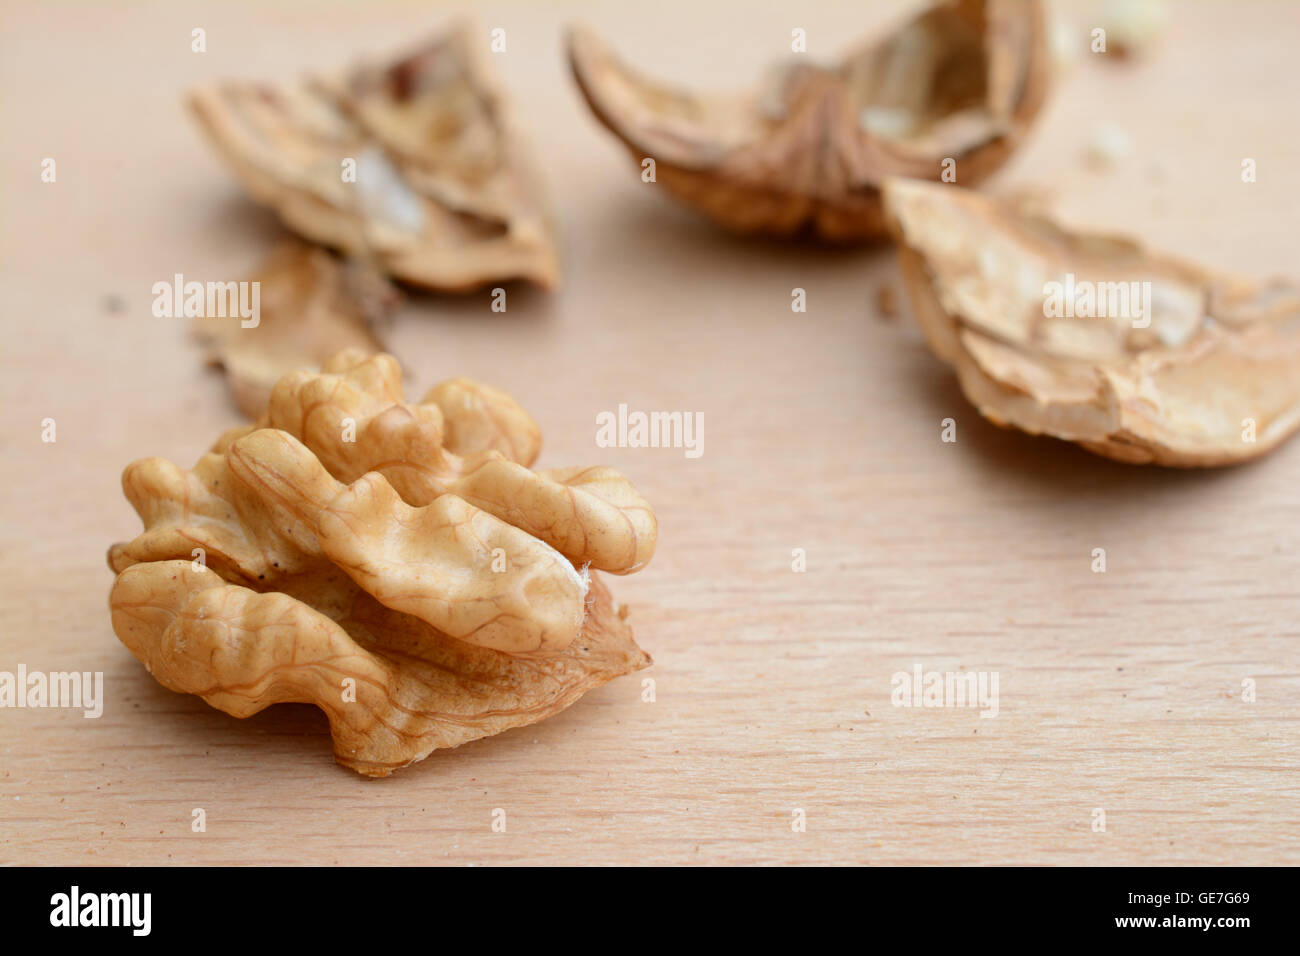 Walnut kernel and cracked nutshell pieces closeup. Shallow depth of field. - Stock Image